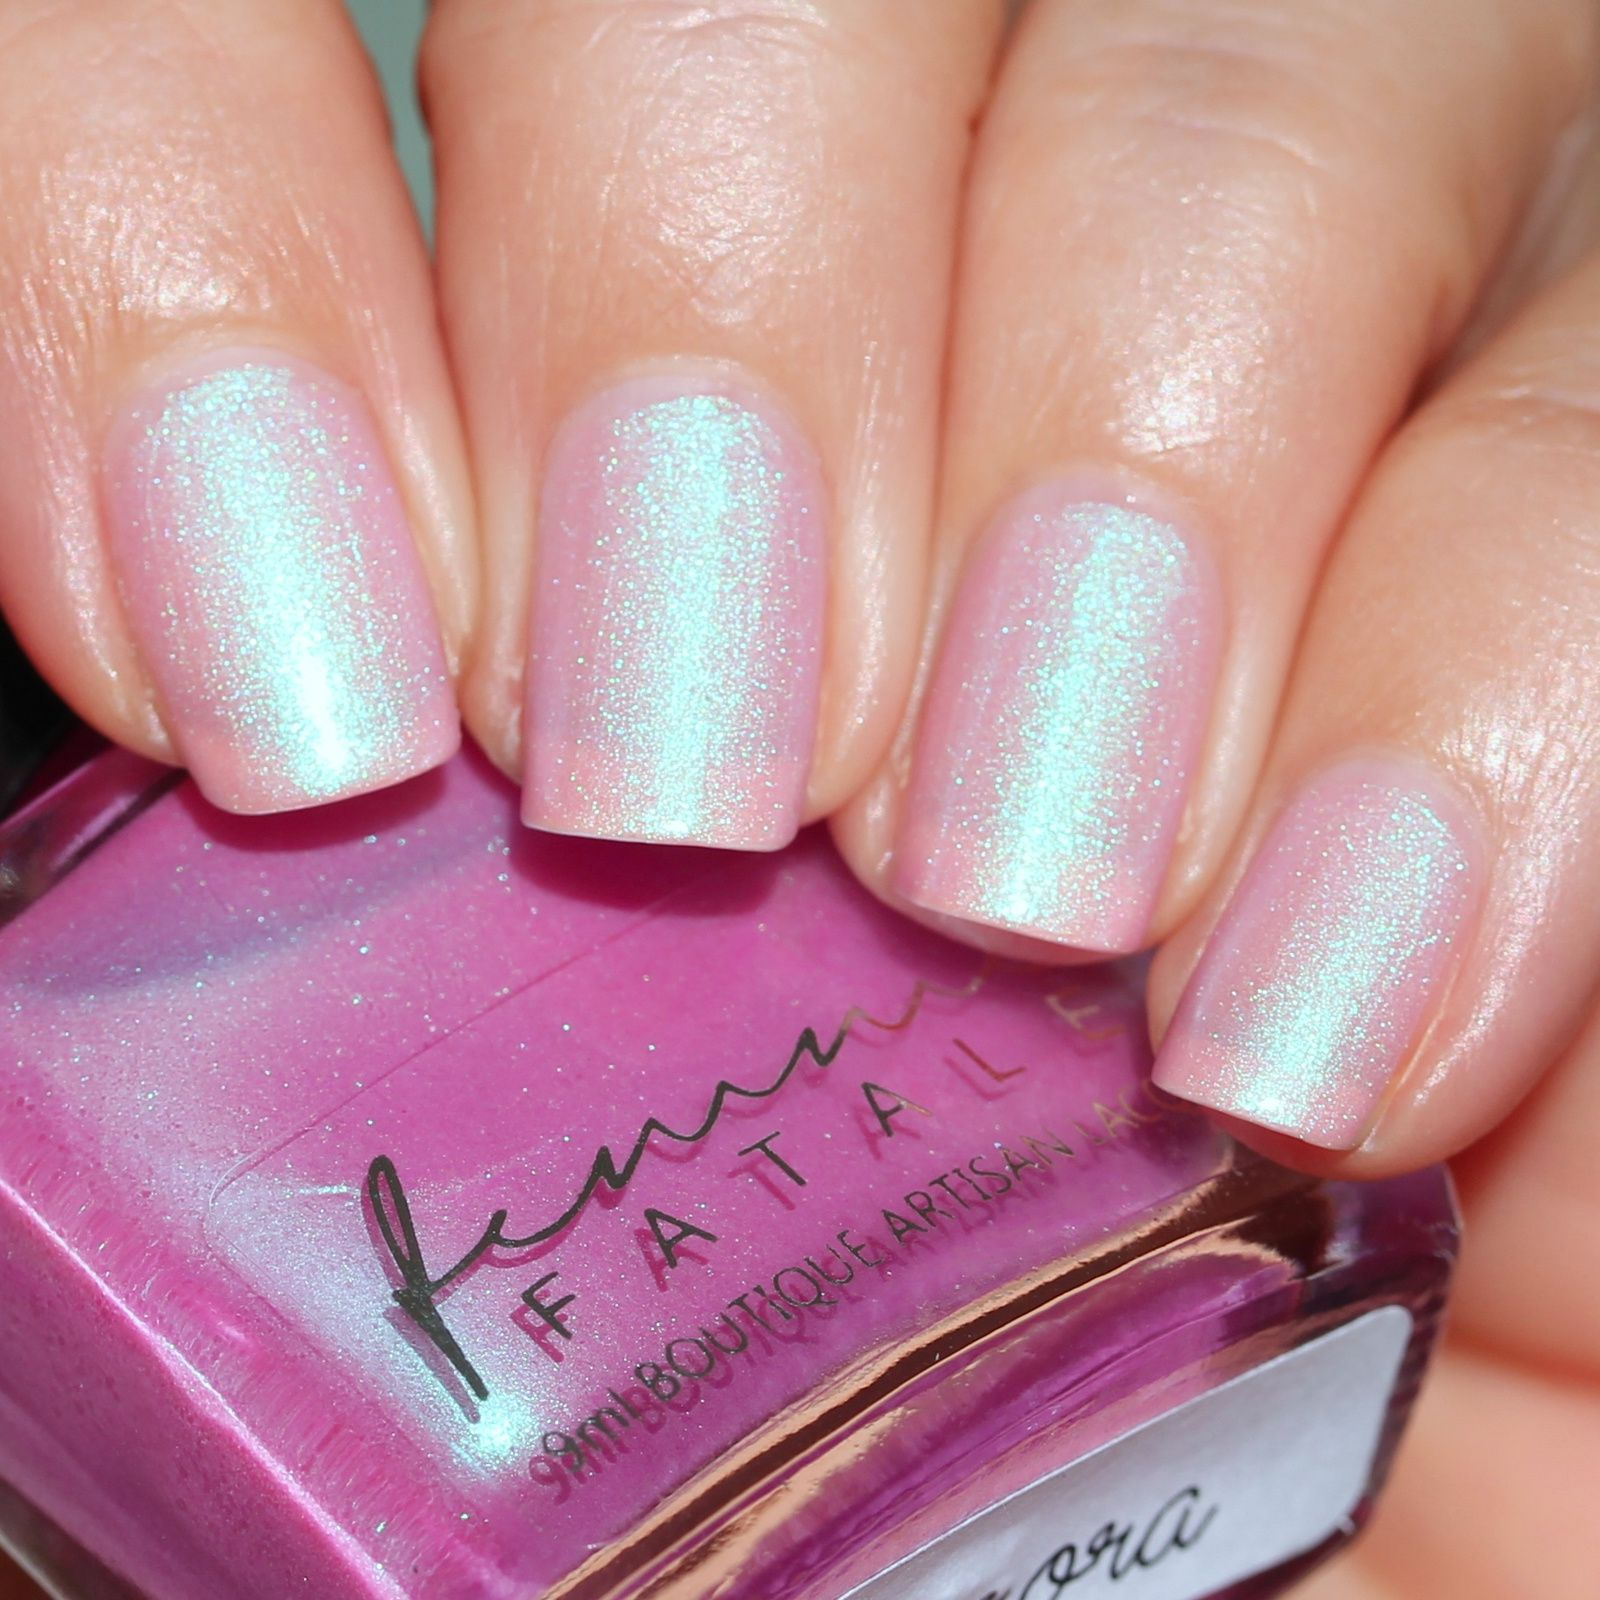 Sally Hansen Complete Care 4-in-1 Extra Moisturizing Nail Treatment / Femme Fatale Cosmetics Aurora / HK Girl Top Coat